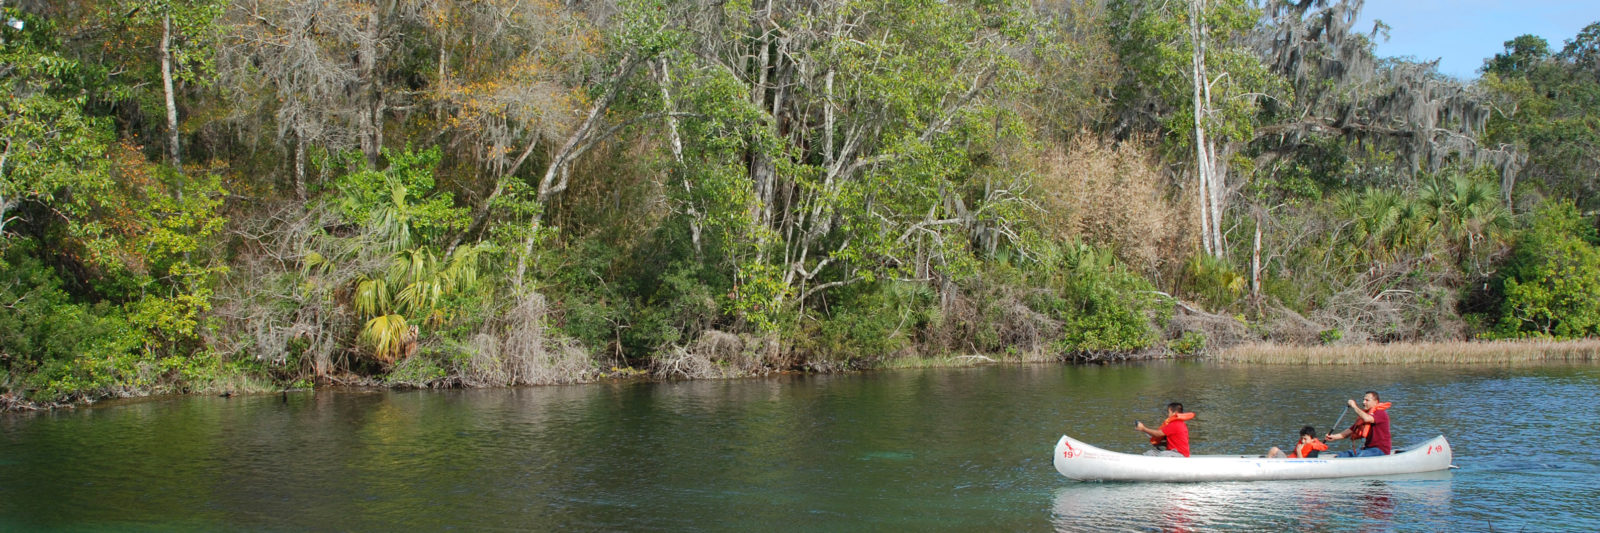 Canoeing the Rainbow River wide